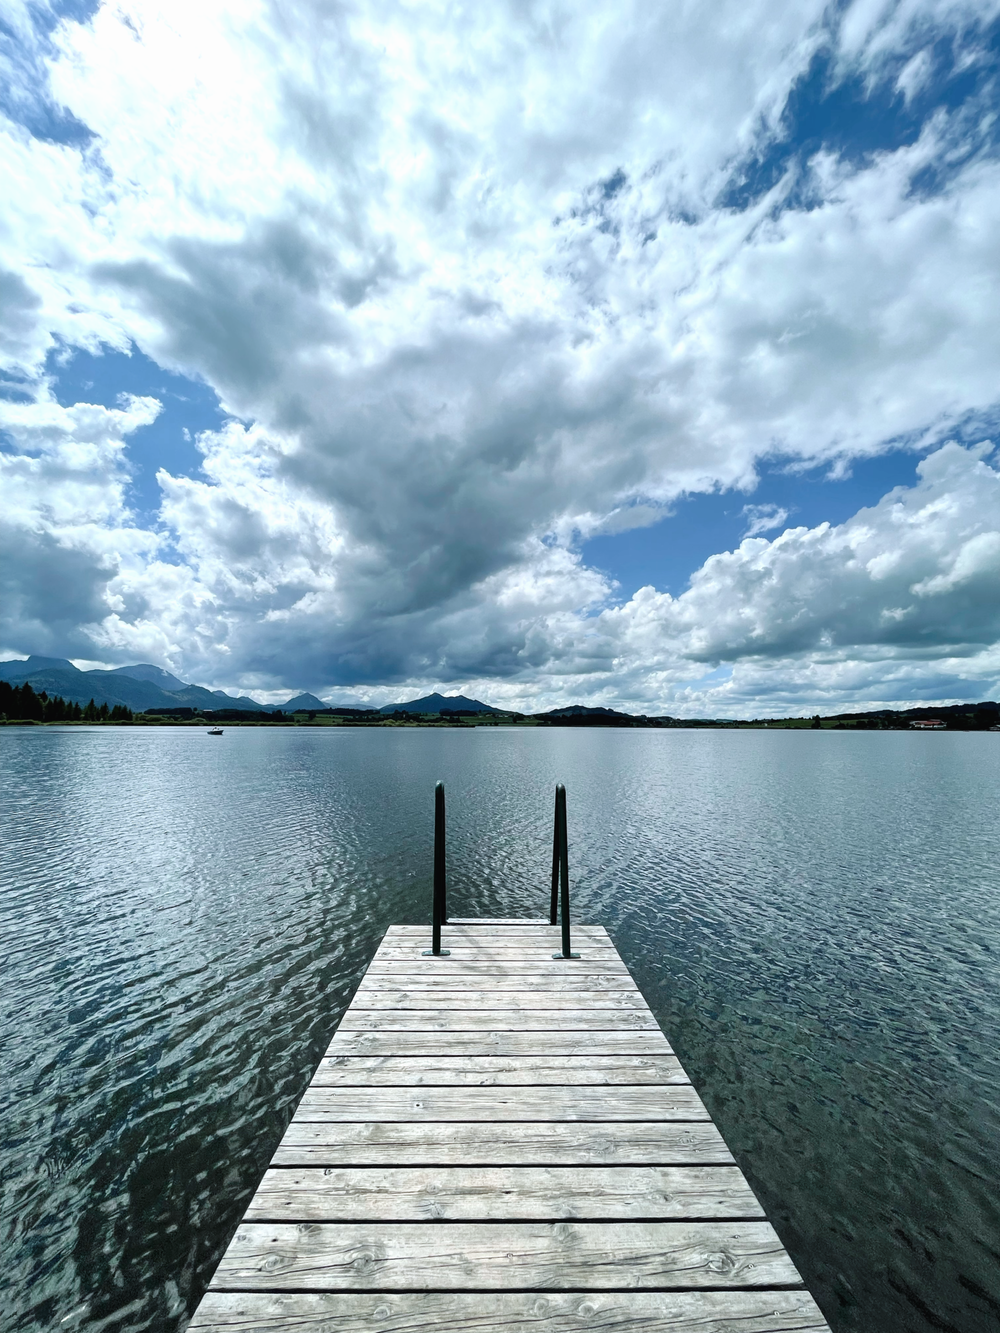 brown wooden dock on body of water under blue and white cloudy sky during daytime